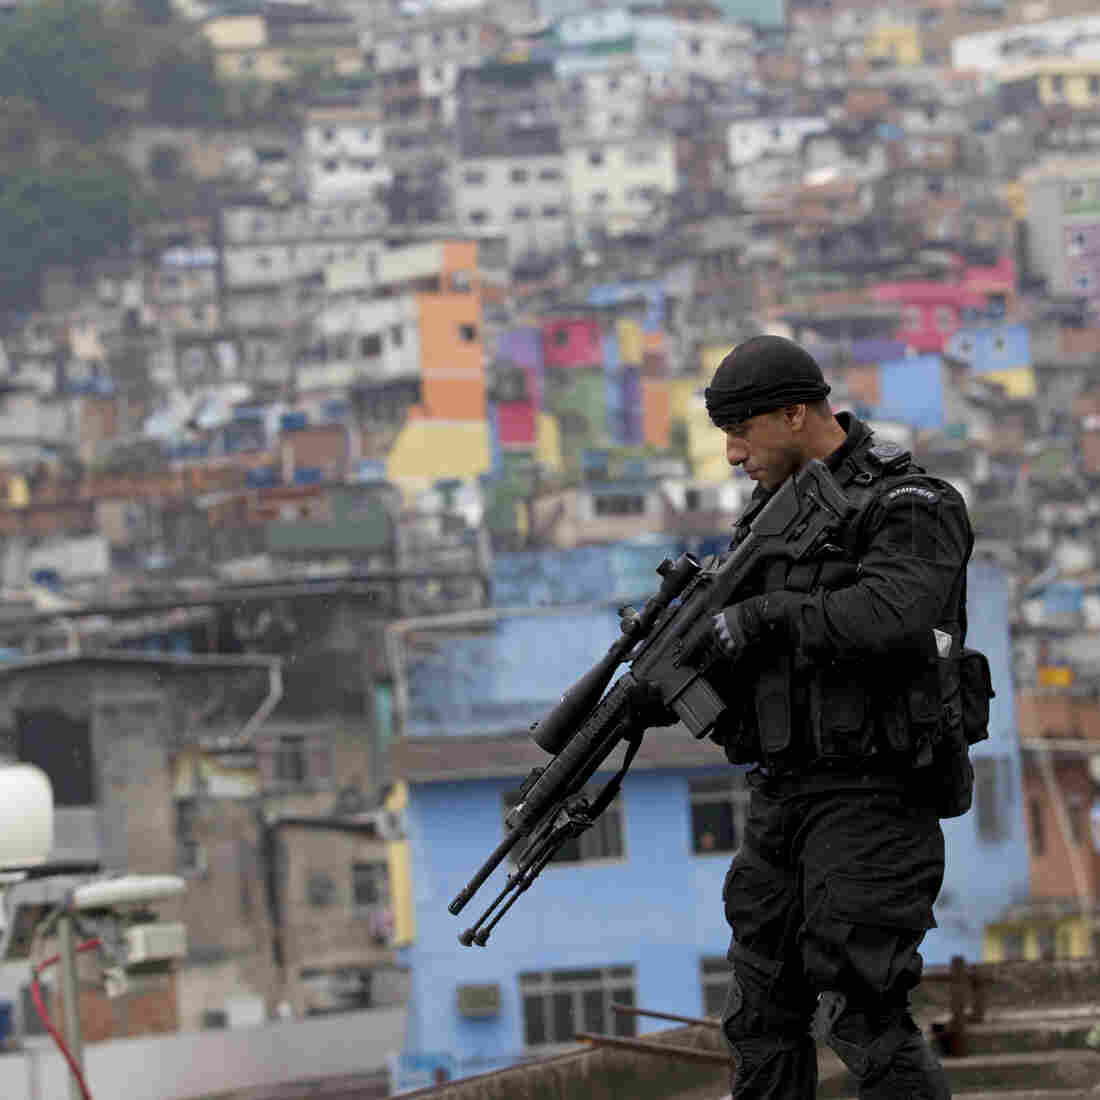 Unease In Sprawling Rio Slum Ahead Of Police 'Pacification'